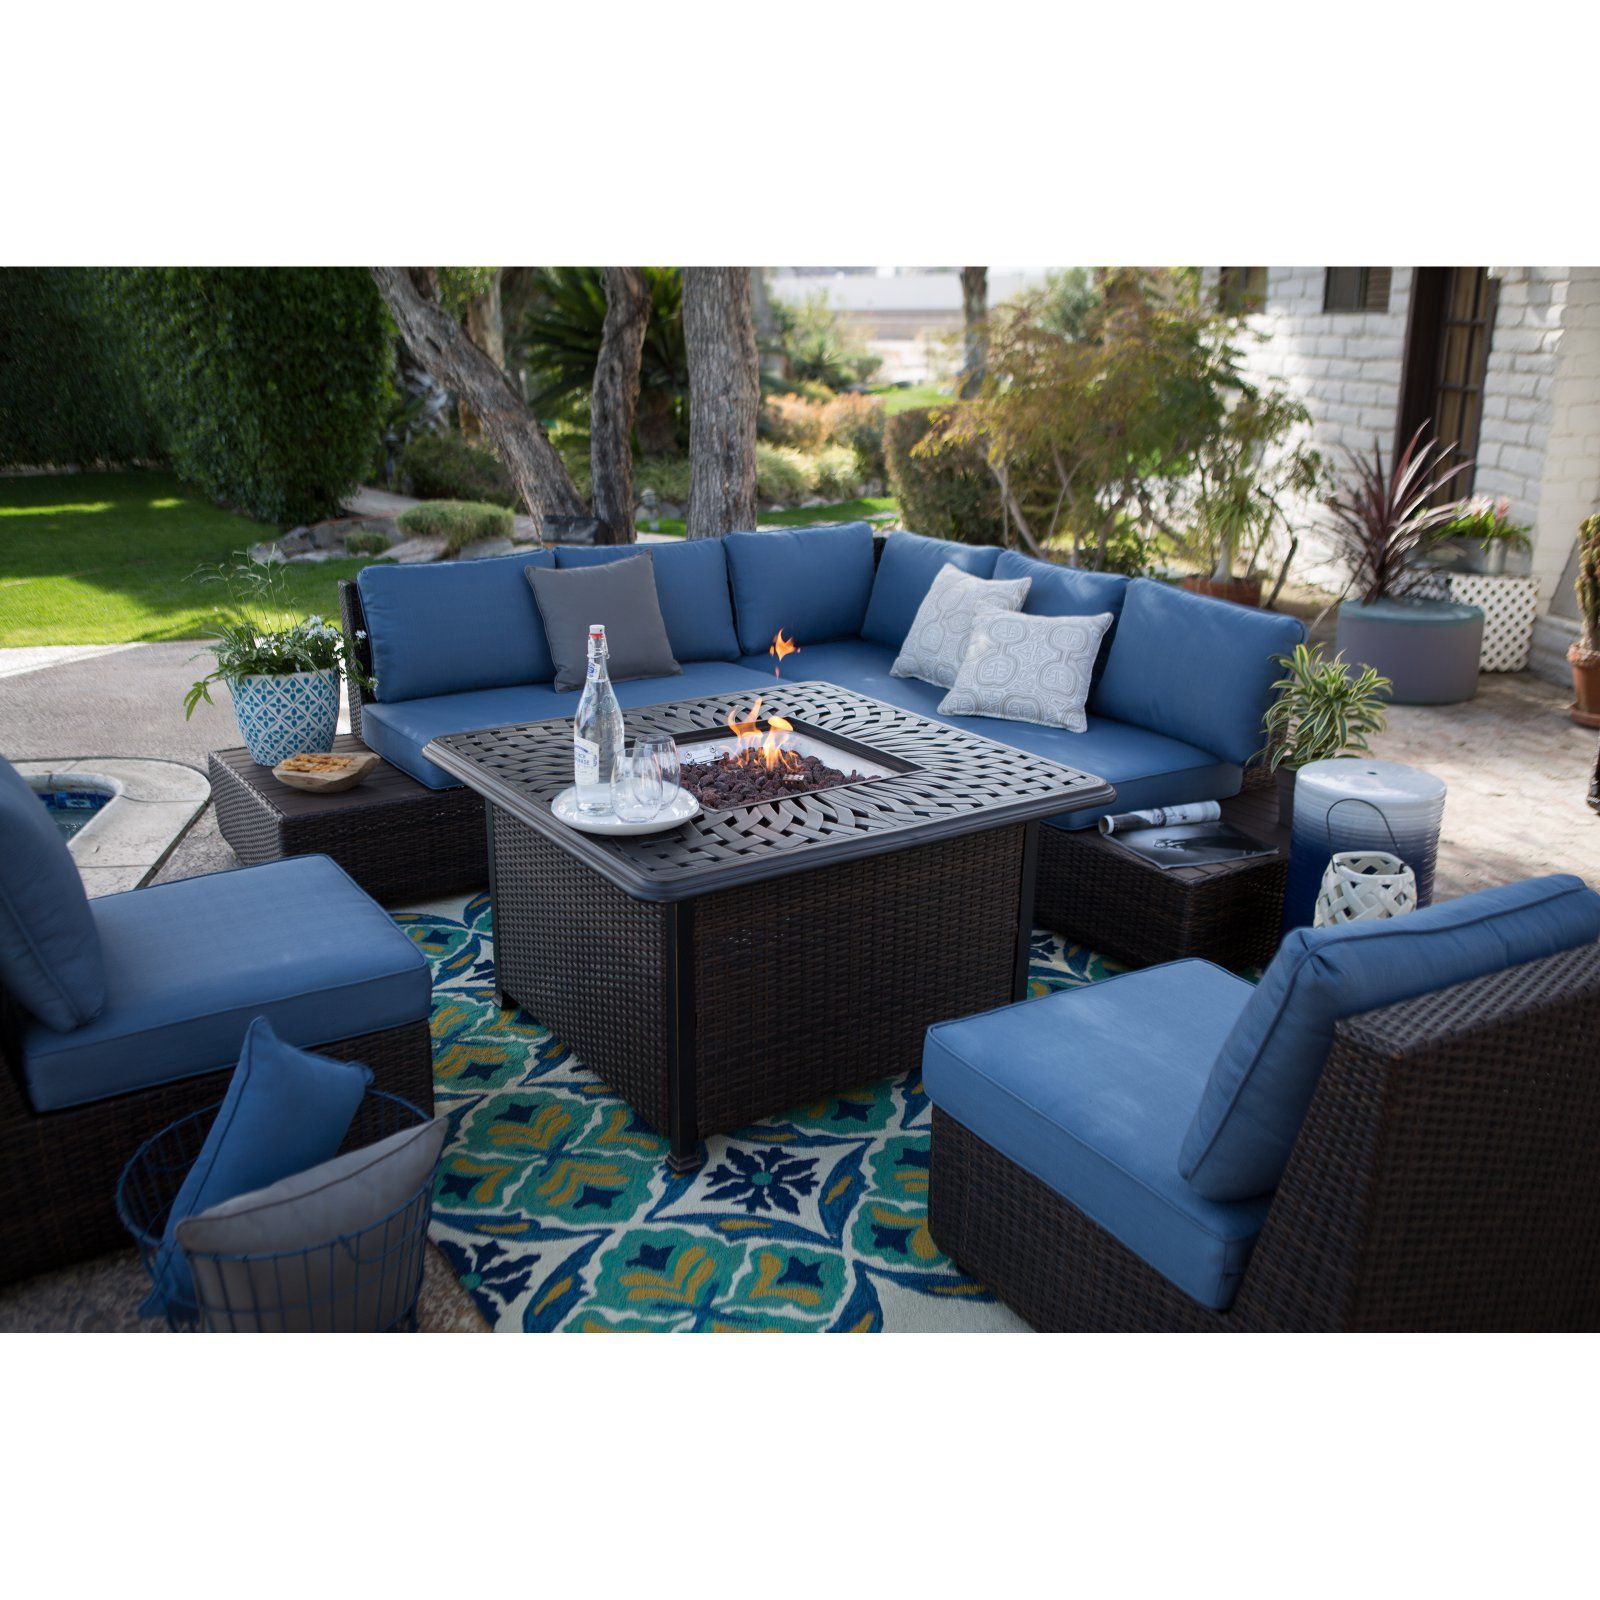 Outdoor Belham Living Luciana Bay Wicker Sofa Sectional Set With